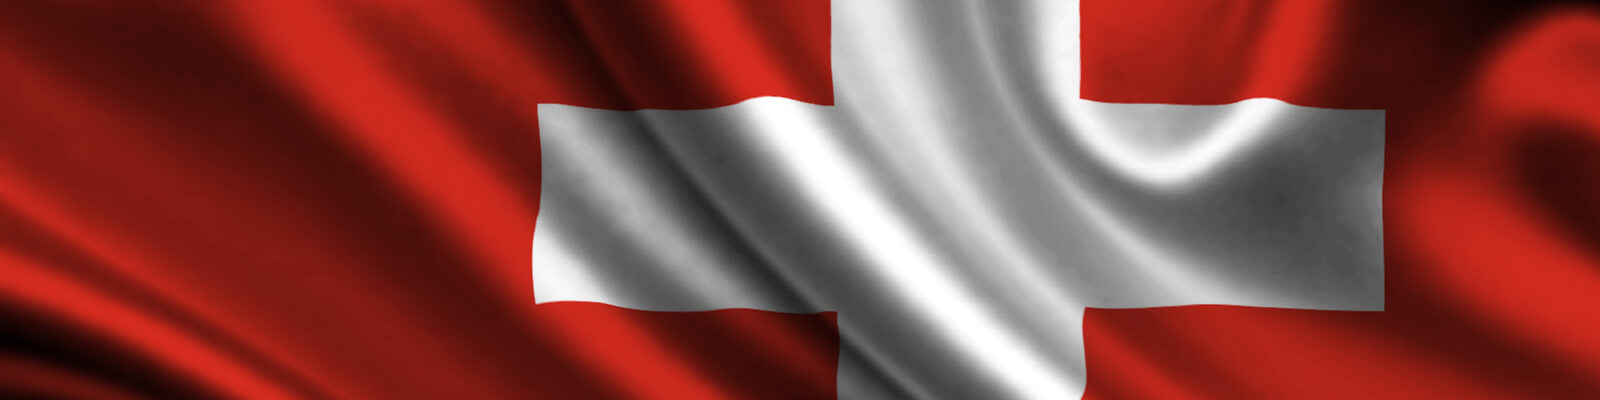 swiss government Switzerland 10y decreased 0 percent or 004% to 001 on friday may 4 from 005 in the previous trading session historically, the switzerland government bond 10y reached an all time high of 563 in september of 1994 and a record low of - 063 in july of 2016 generally, a government bond is issued by a national.